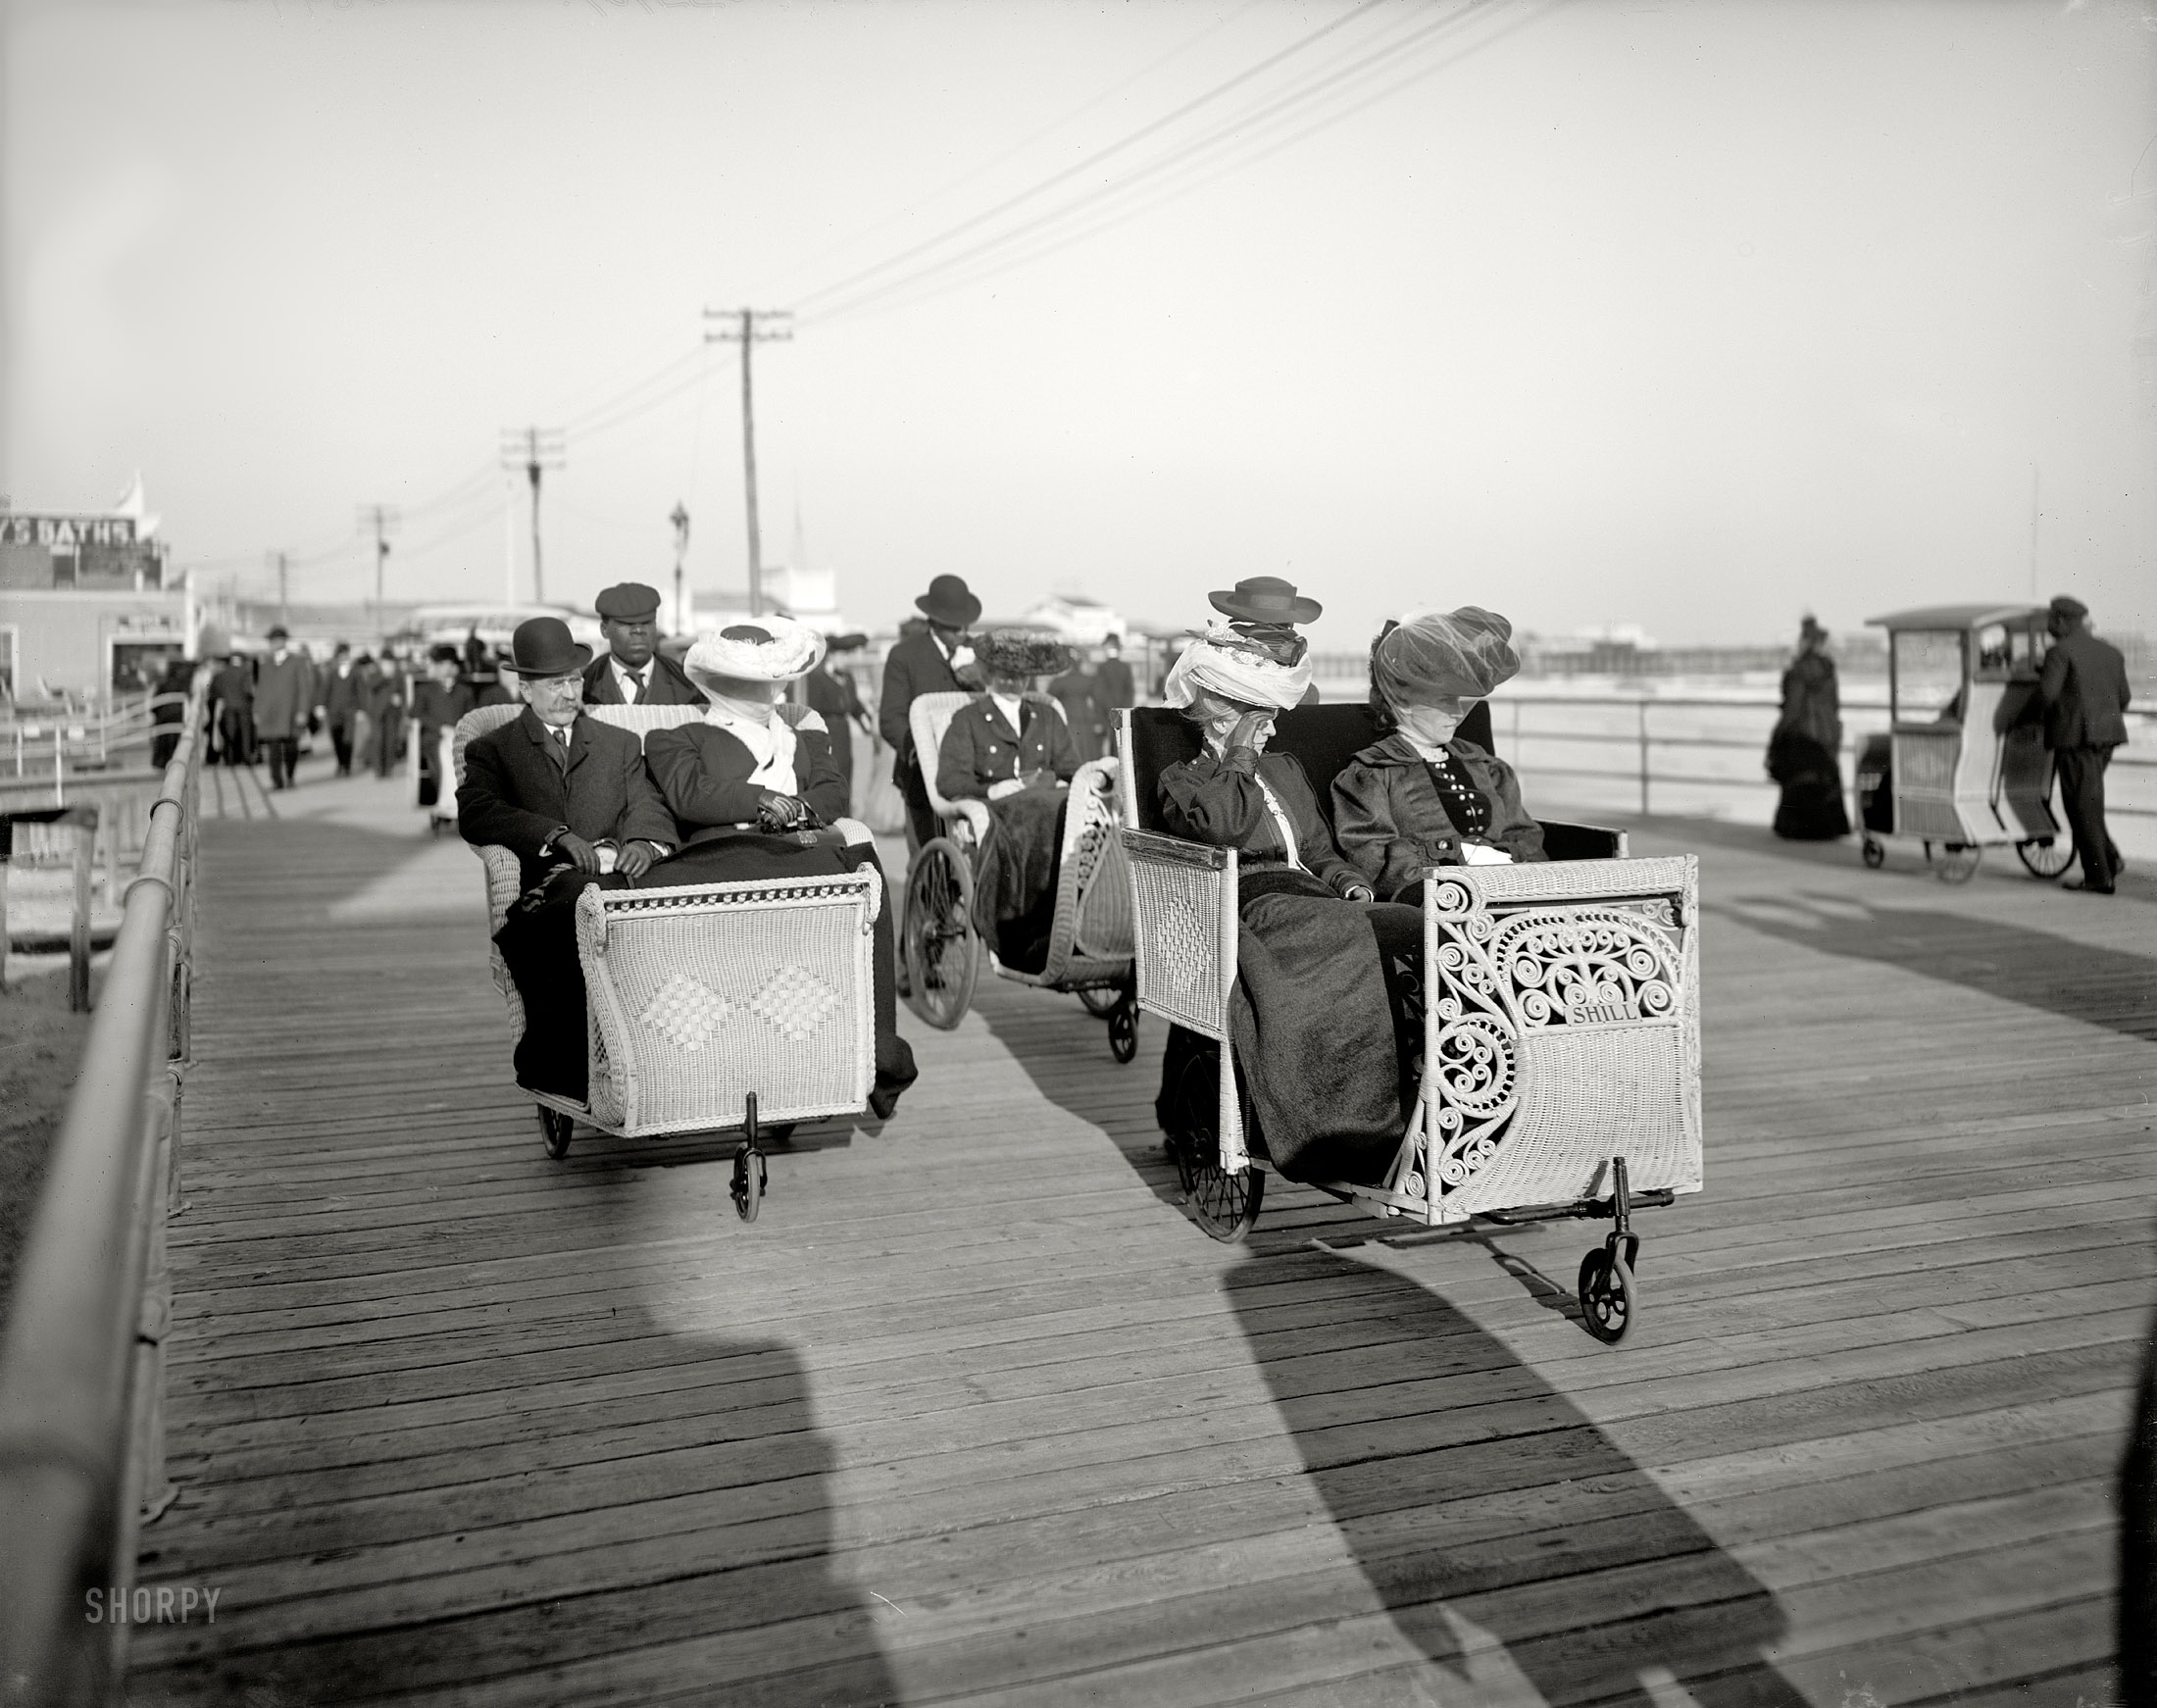 Shorpy Historic Picture Archive A Fast Crowd 1905 High Resolution Photo